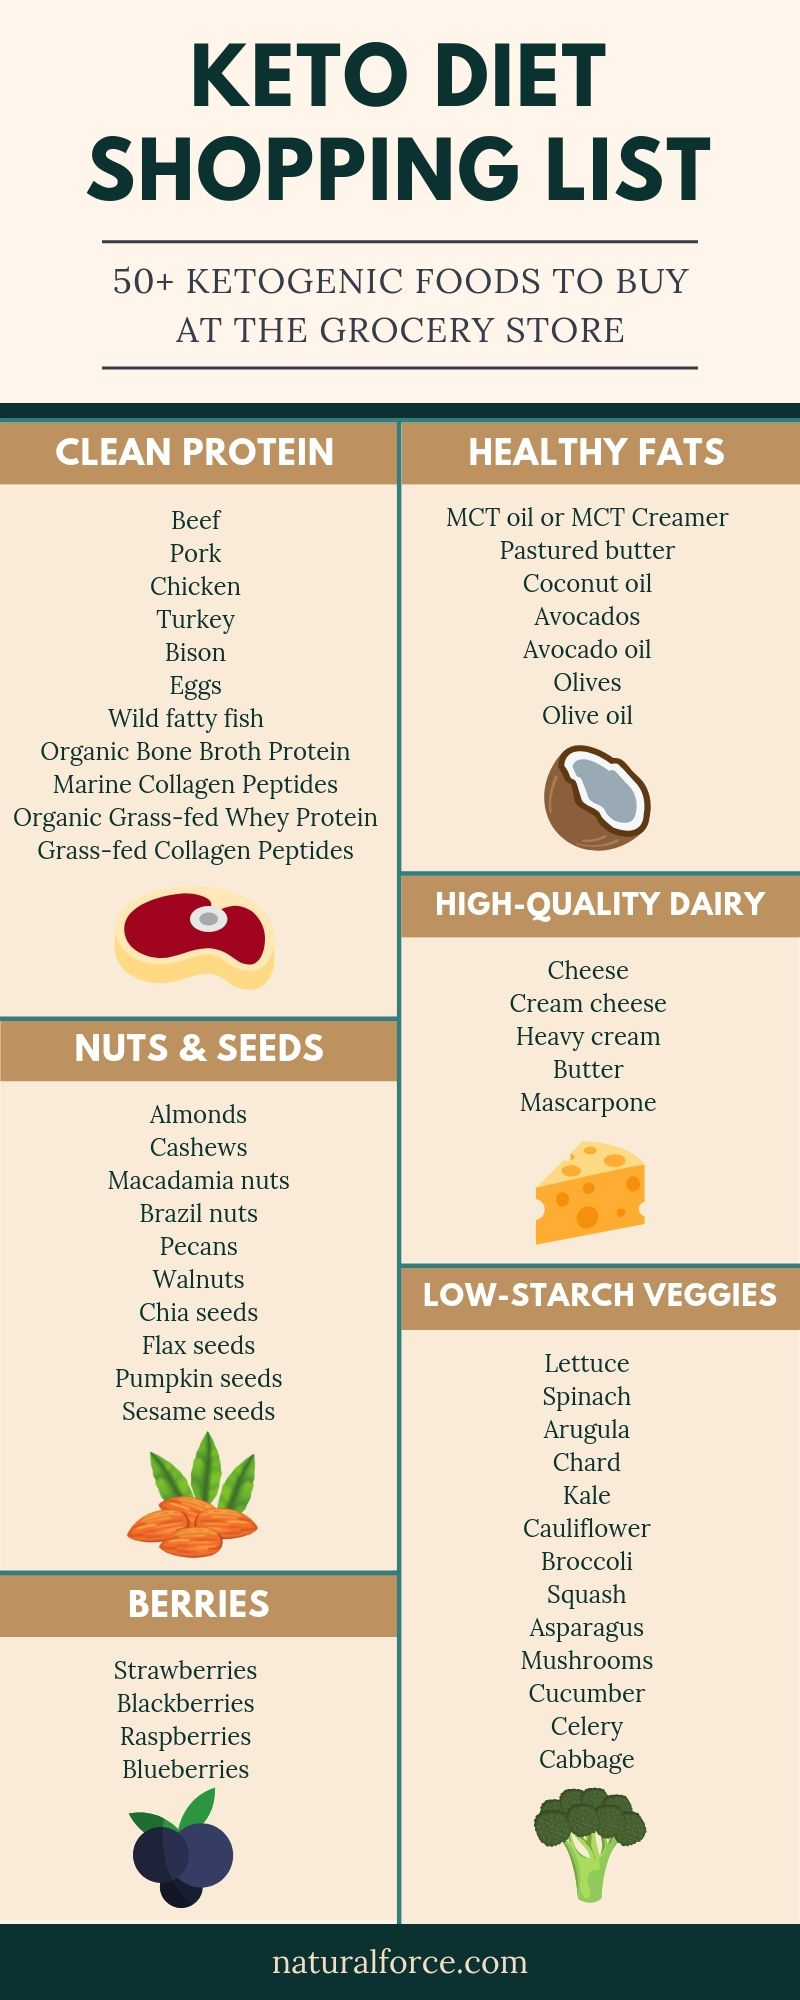 keto diet shopping list infographic